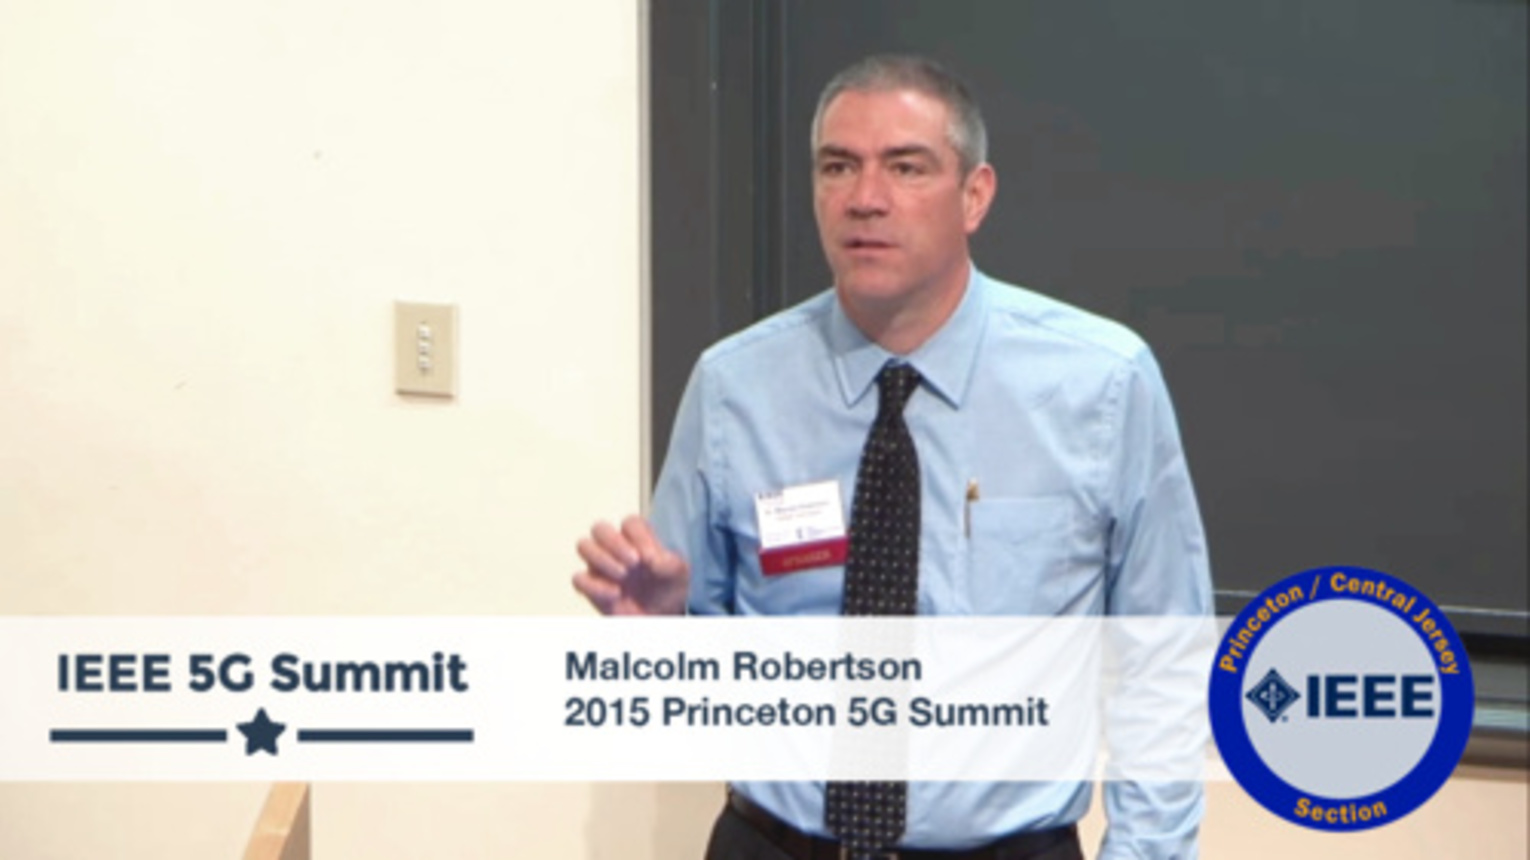 Princeton 5G Summit - Malcolm Robertson Keynote - Misperceptions, Metrology, and Measurements, Oh My